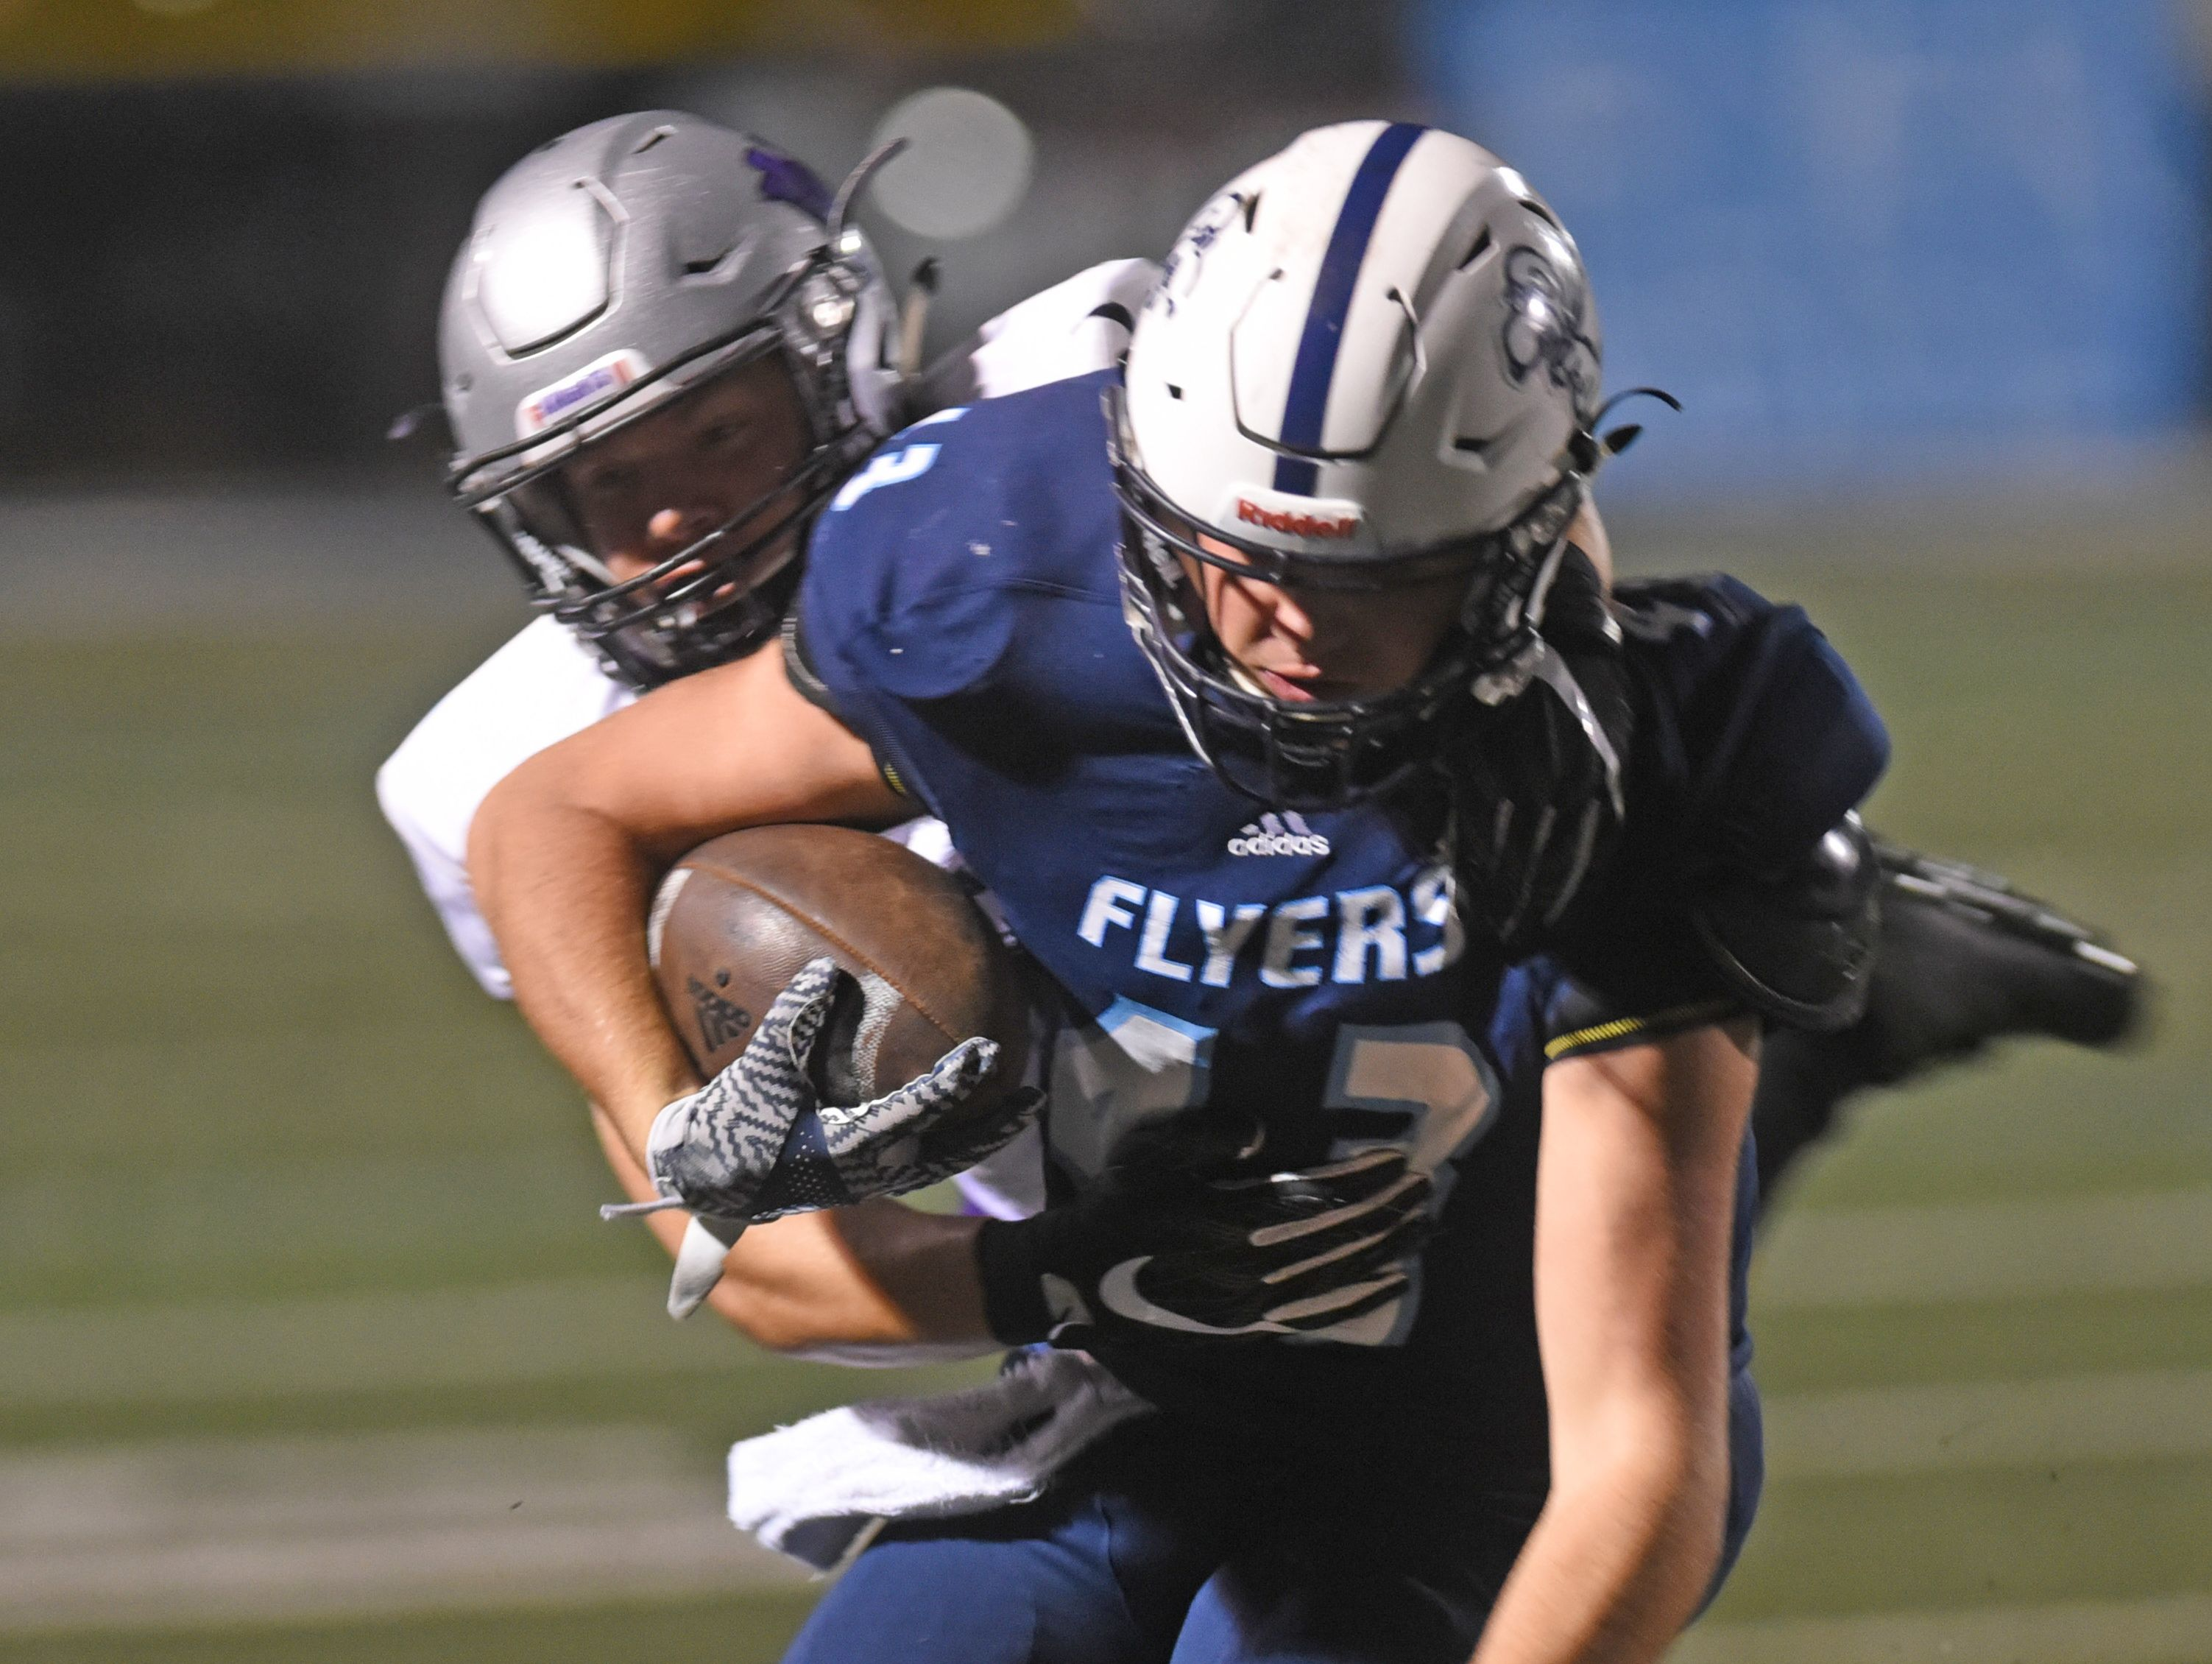 Loyola's Ethan Stansell had another 200-yard rushing game in the Flyers 40-34 win over North Webster.at Messmer Stadium